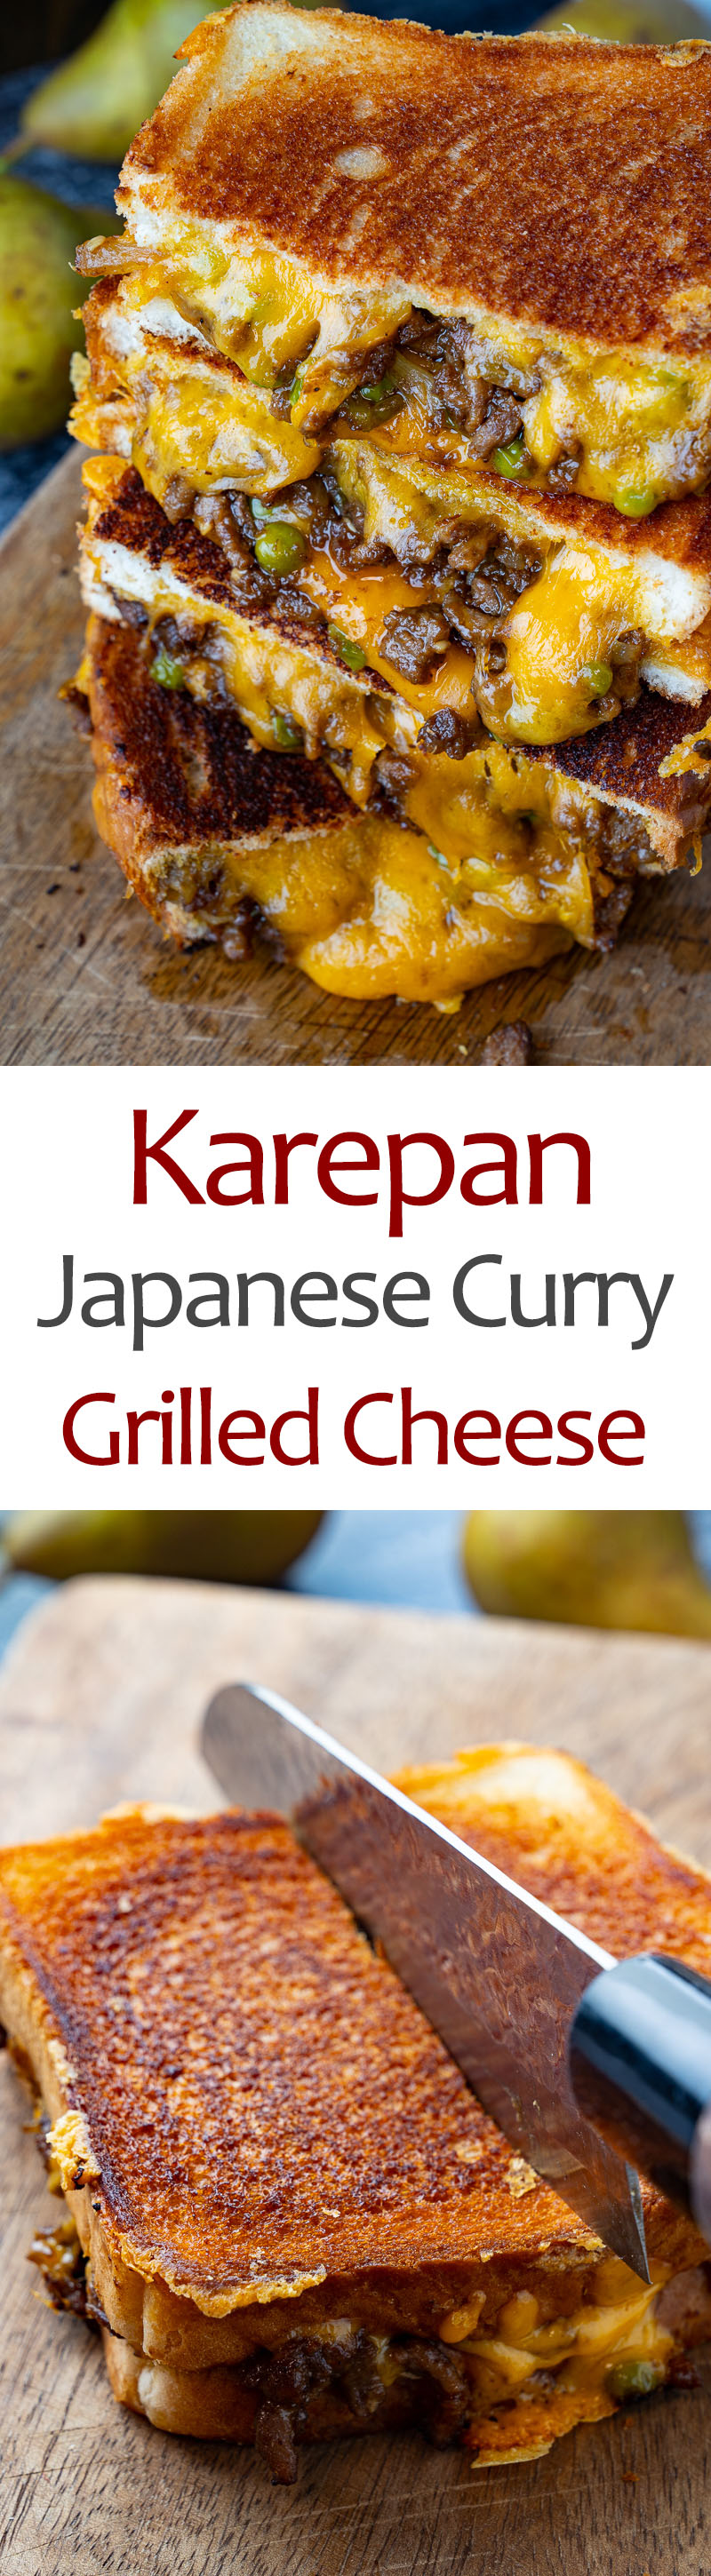 Karepan (Japanese Curry Grilled Cheese)